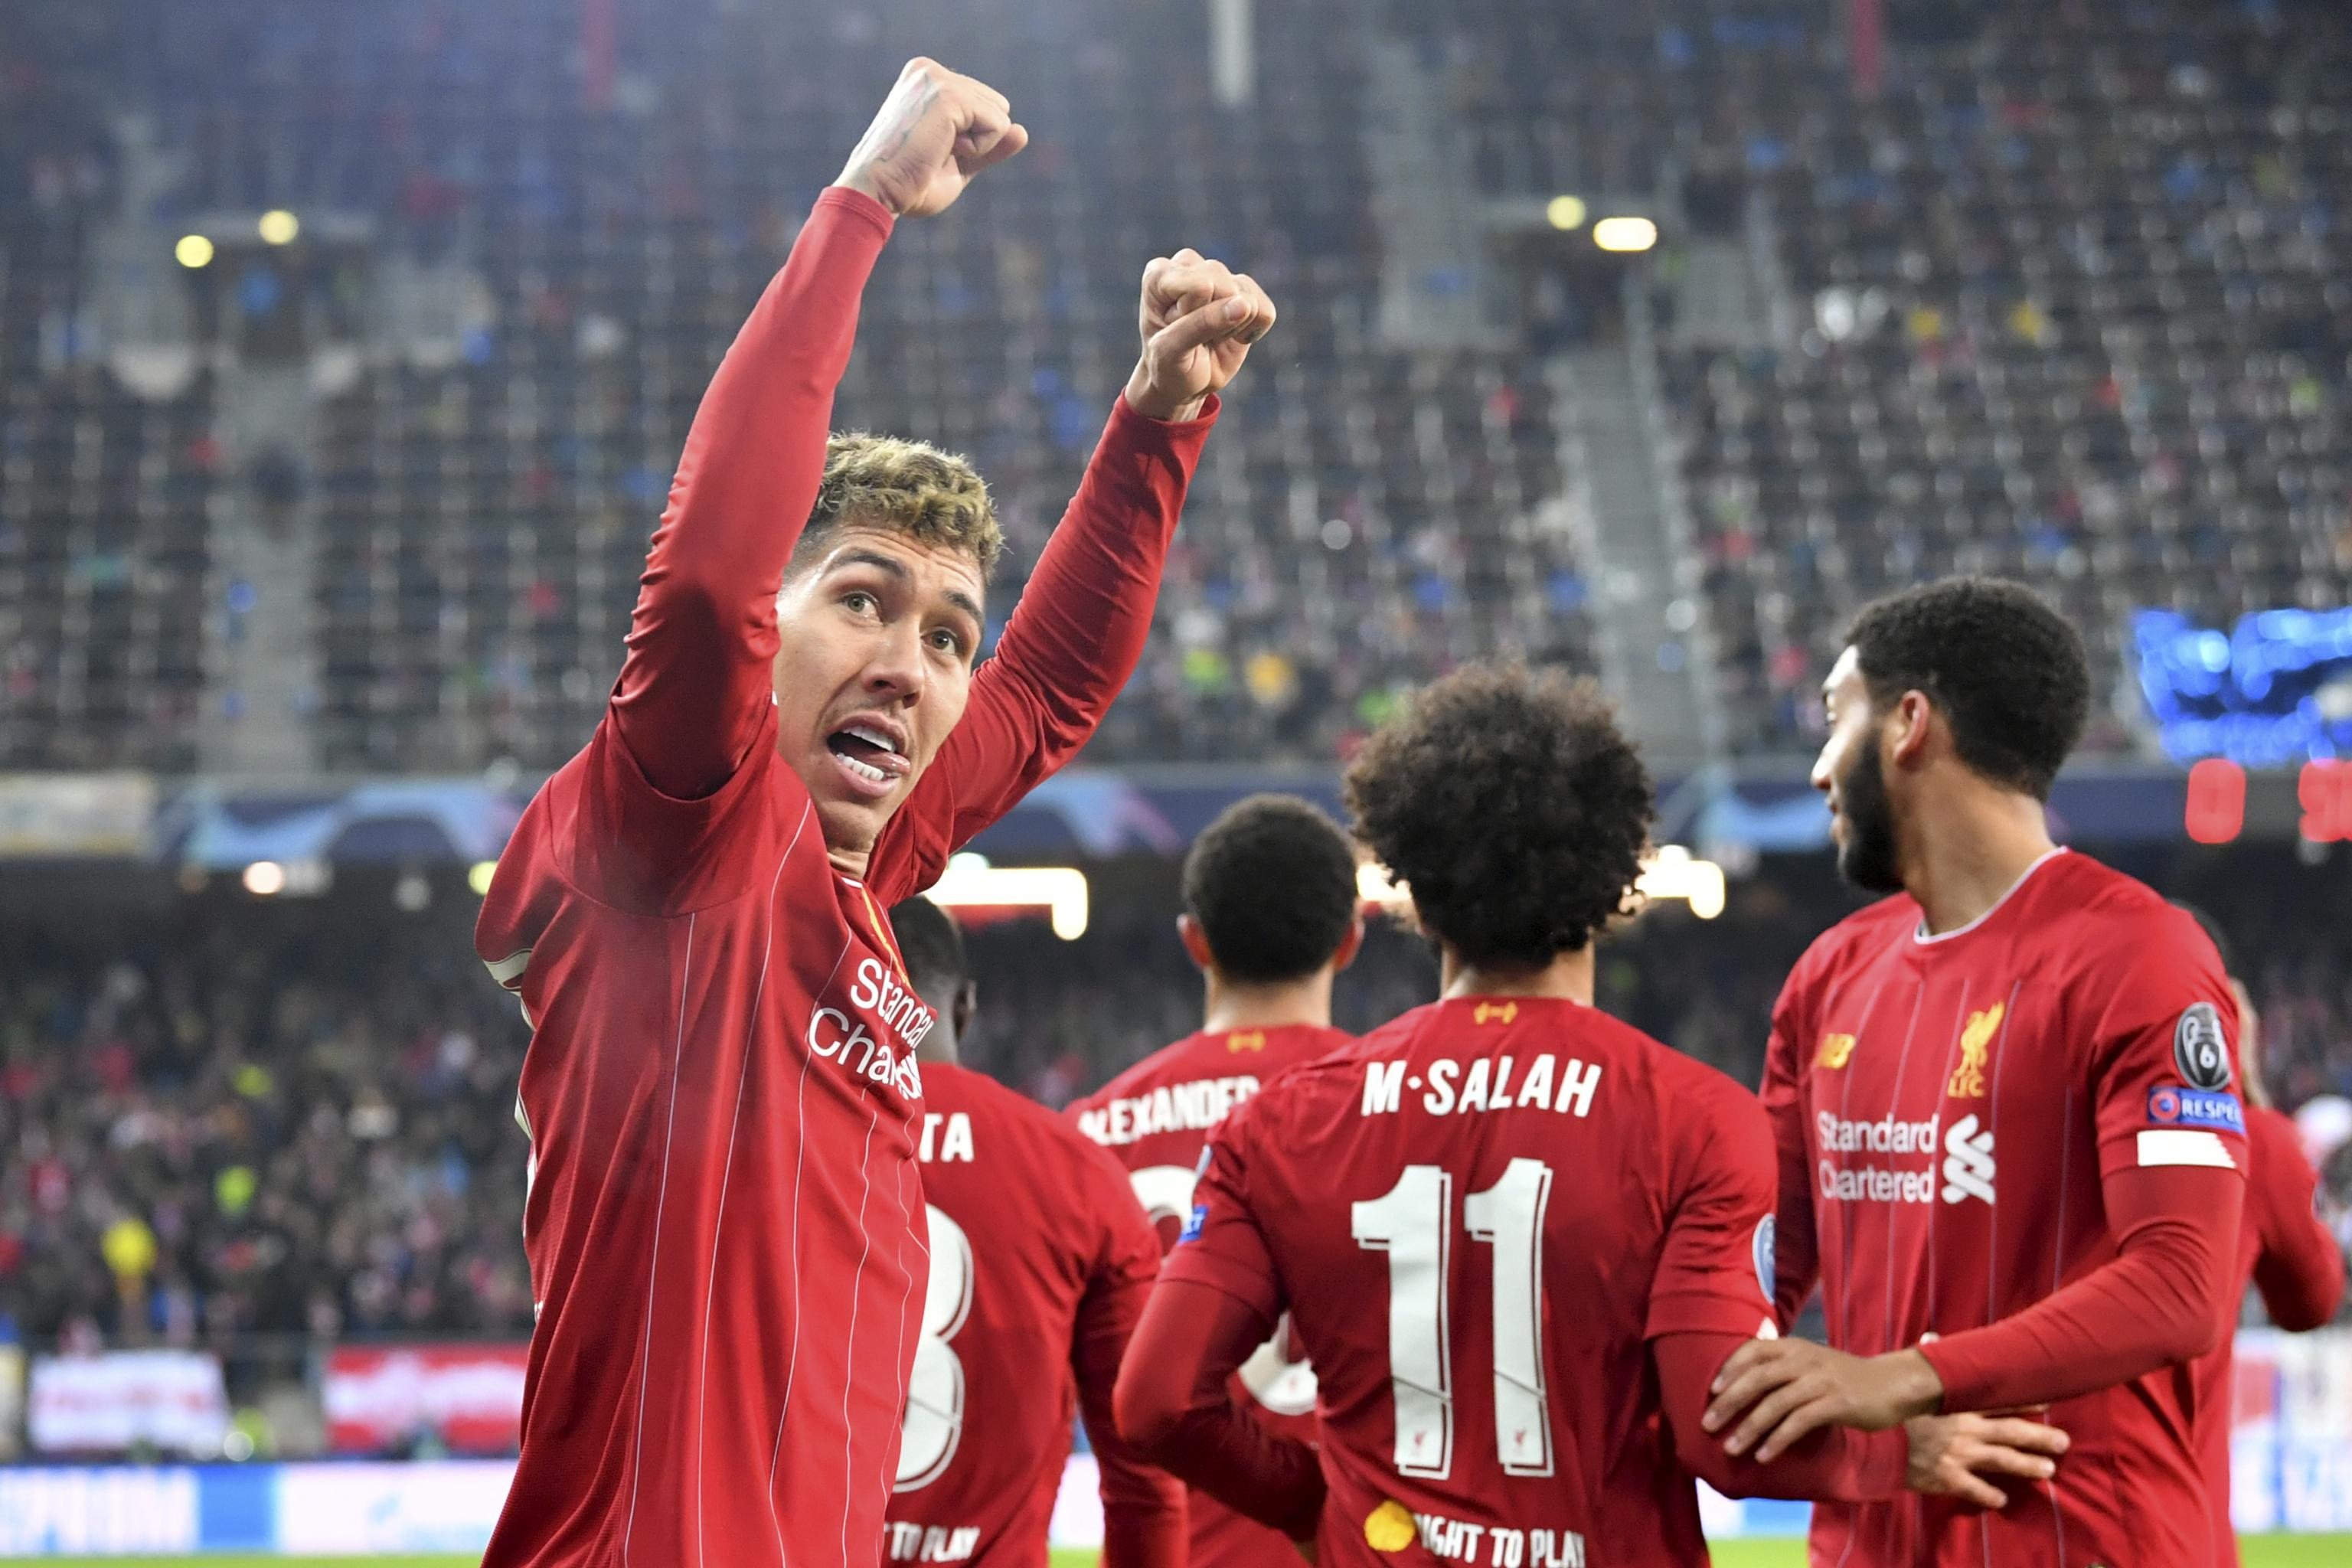 Uefa Champions And Europa League 2020 Round Of 16 Live Stream